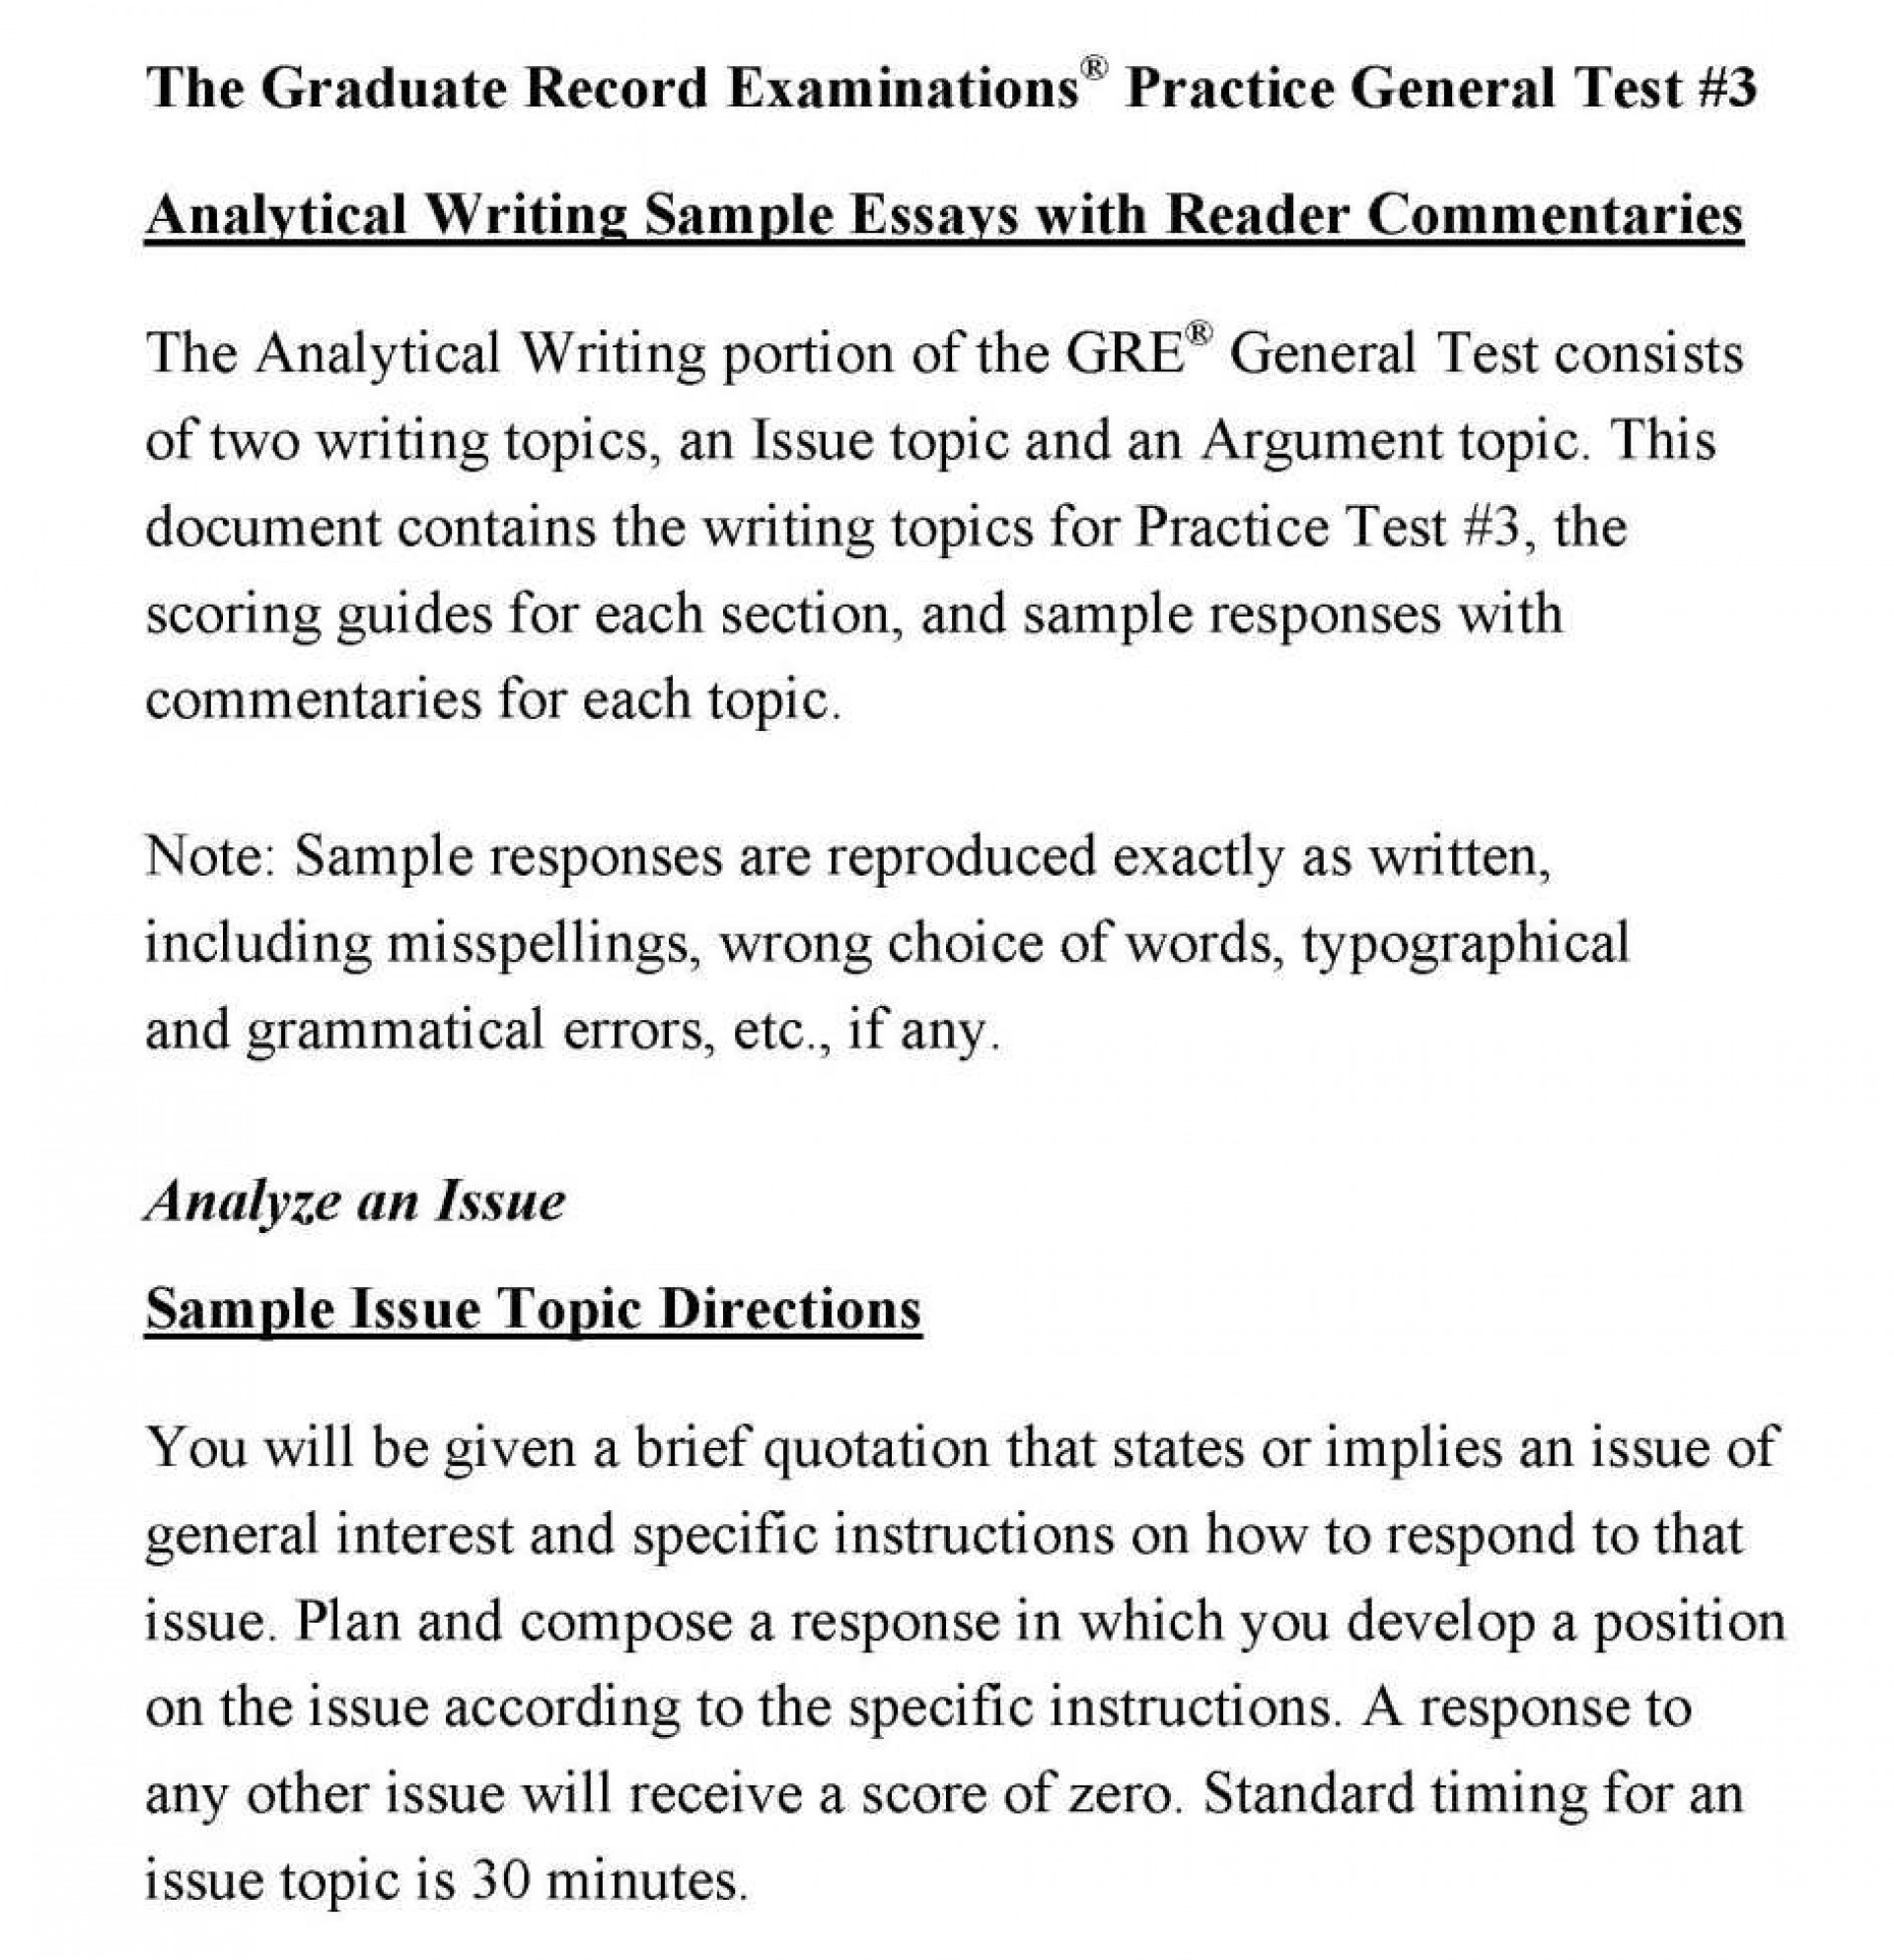 005 Gre Argument Essay Sample Samples Pdf Cover Letter Example Examples Issue Analytical Writ Topic Writing Ets Awa Good Score To Unbelievable 6 1920